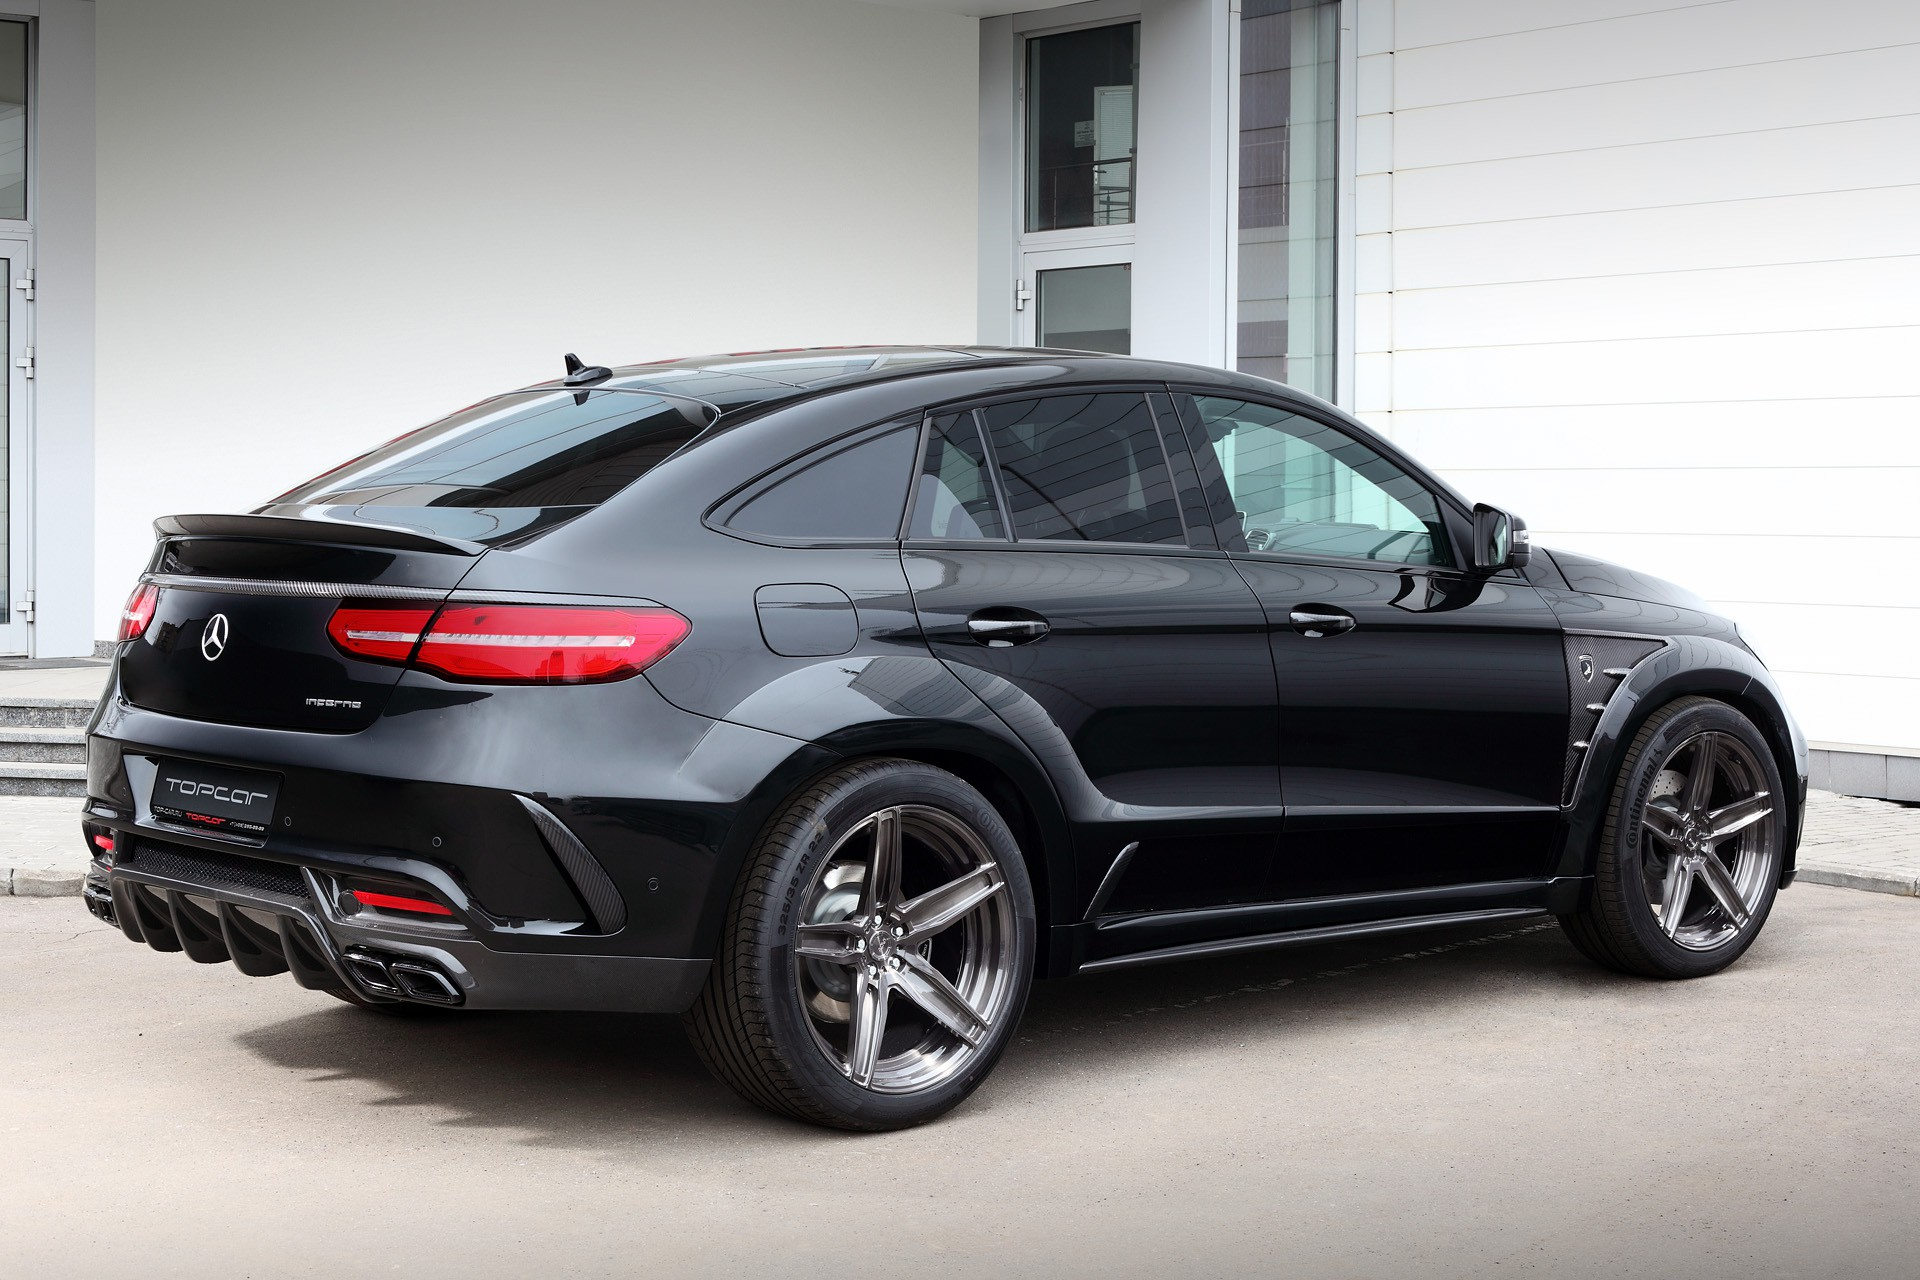 Mercedes Benz Gle Coupe Gets Topcar Styling Kit Paul Tan